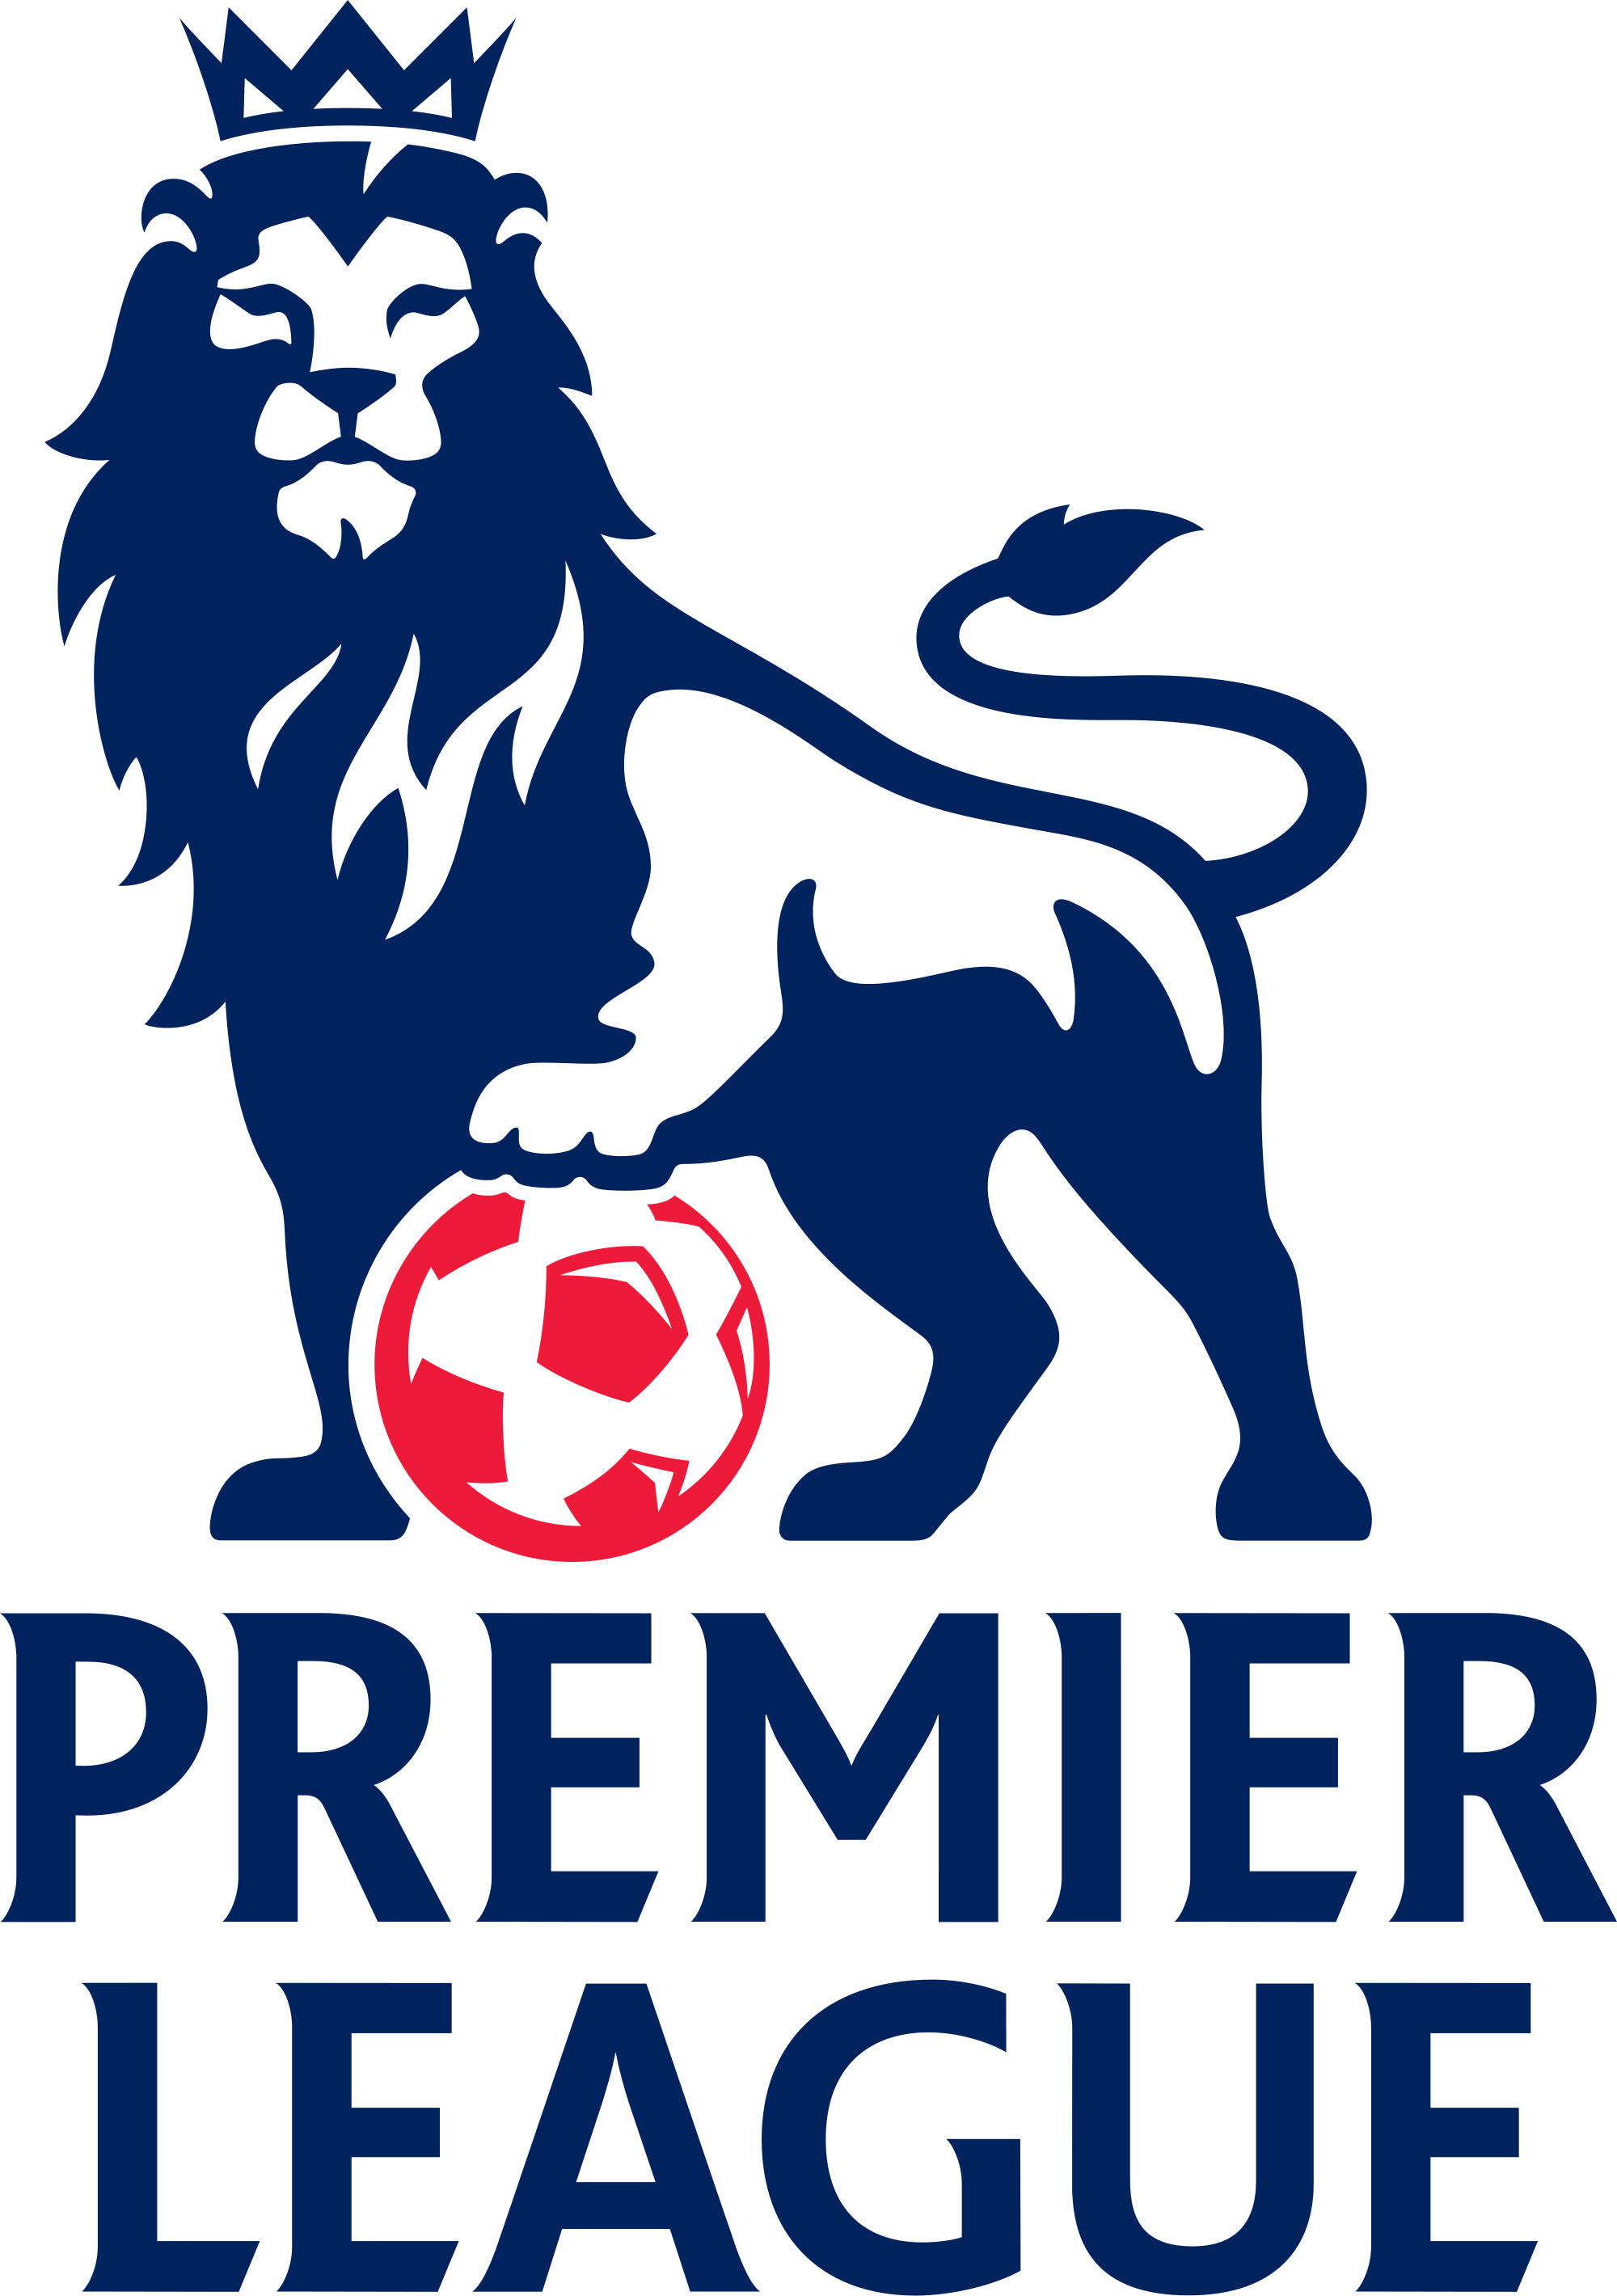 Pin By Rashad F On The Beautiful Game The Best Of Soccer Football Around The World Premier League Logo English Football League Premier League Football